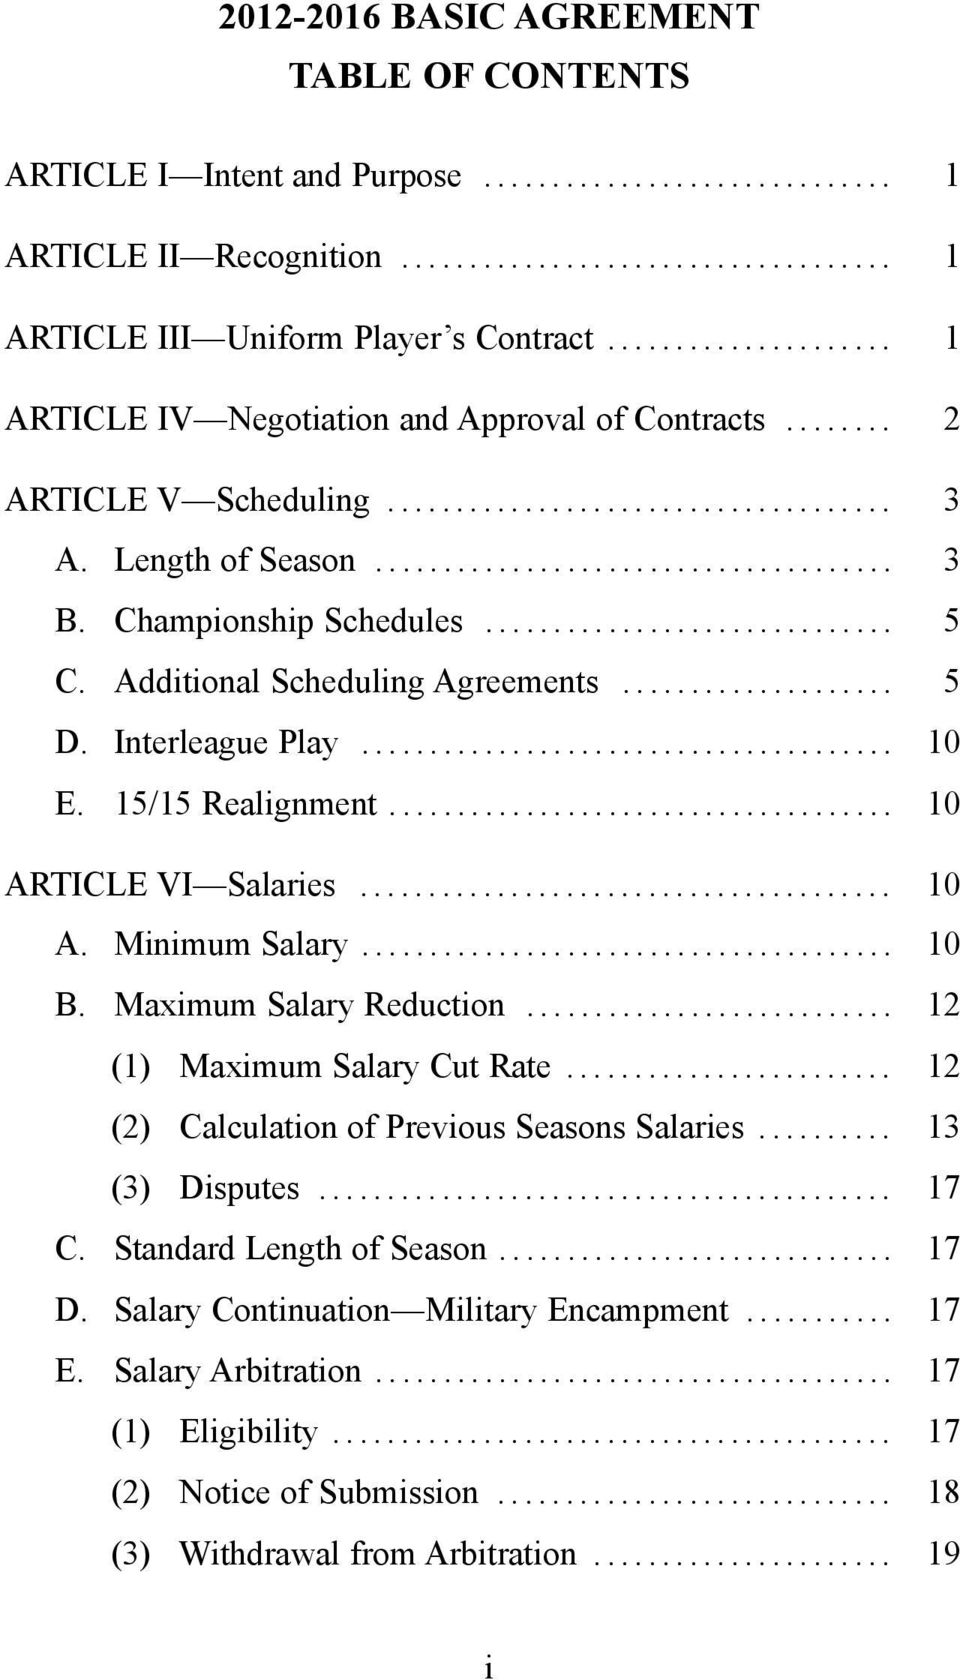 Interleague Play... 10 E. 15/15 Realignment... 10 ARTICLE VI Salaries... 10 A. Minimum Salary... 10 B. Maximum Salary Reduction... 12 (1) Maximum Salary Cut Rate.